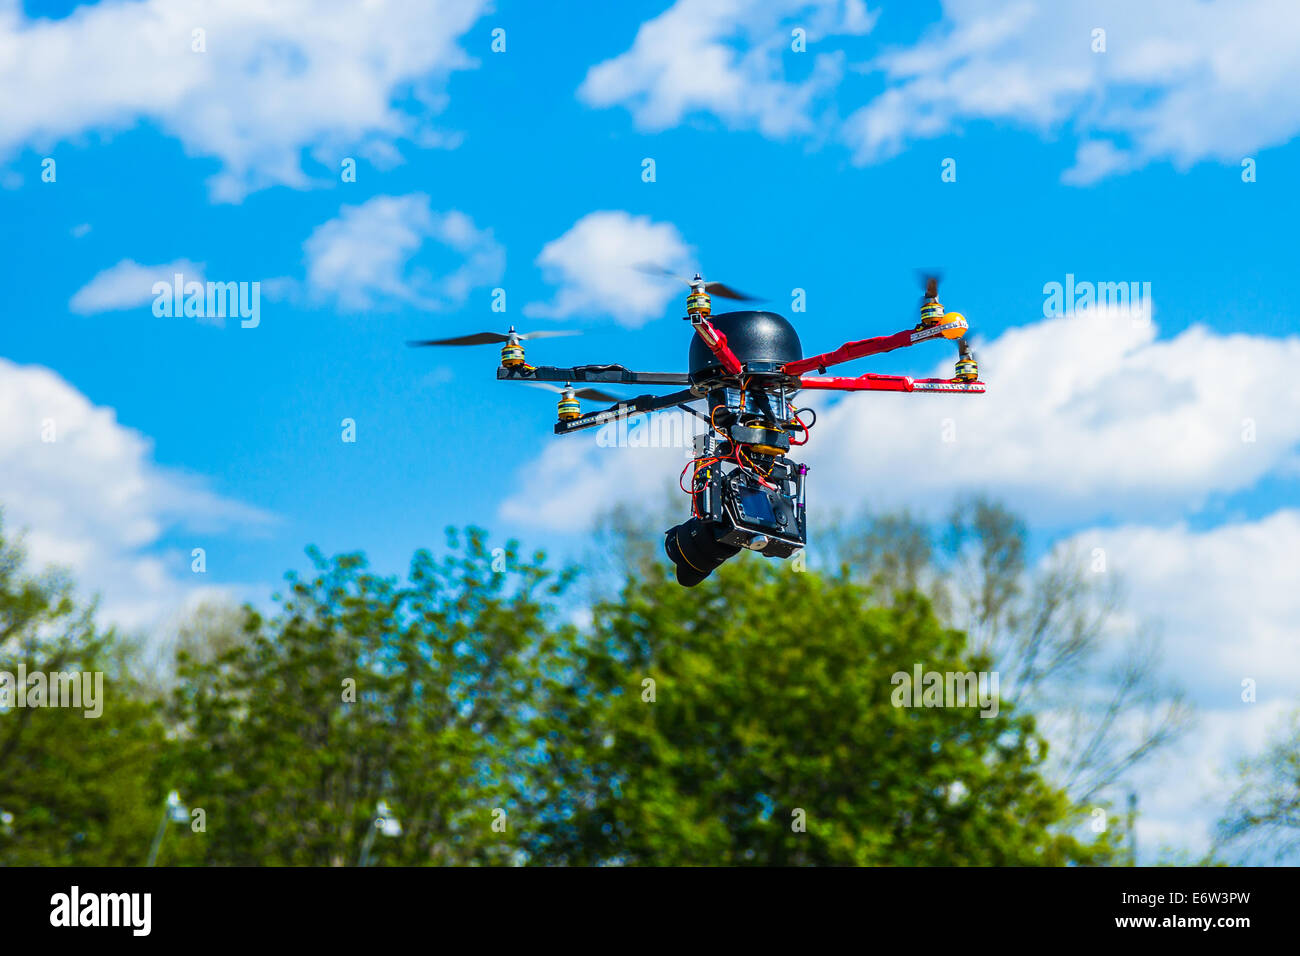 Closeup view of a hexacopter with photo camera attached in low altitude flight - Stock Image